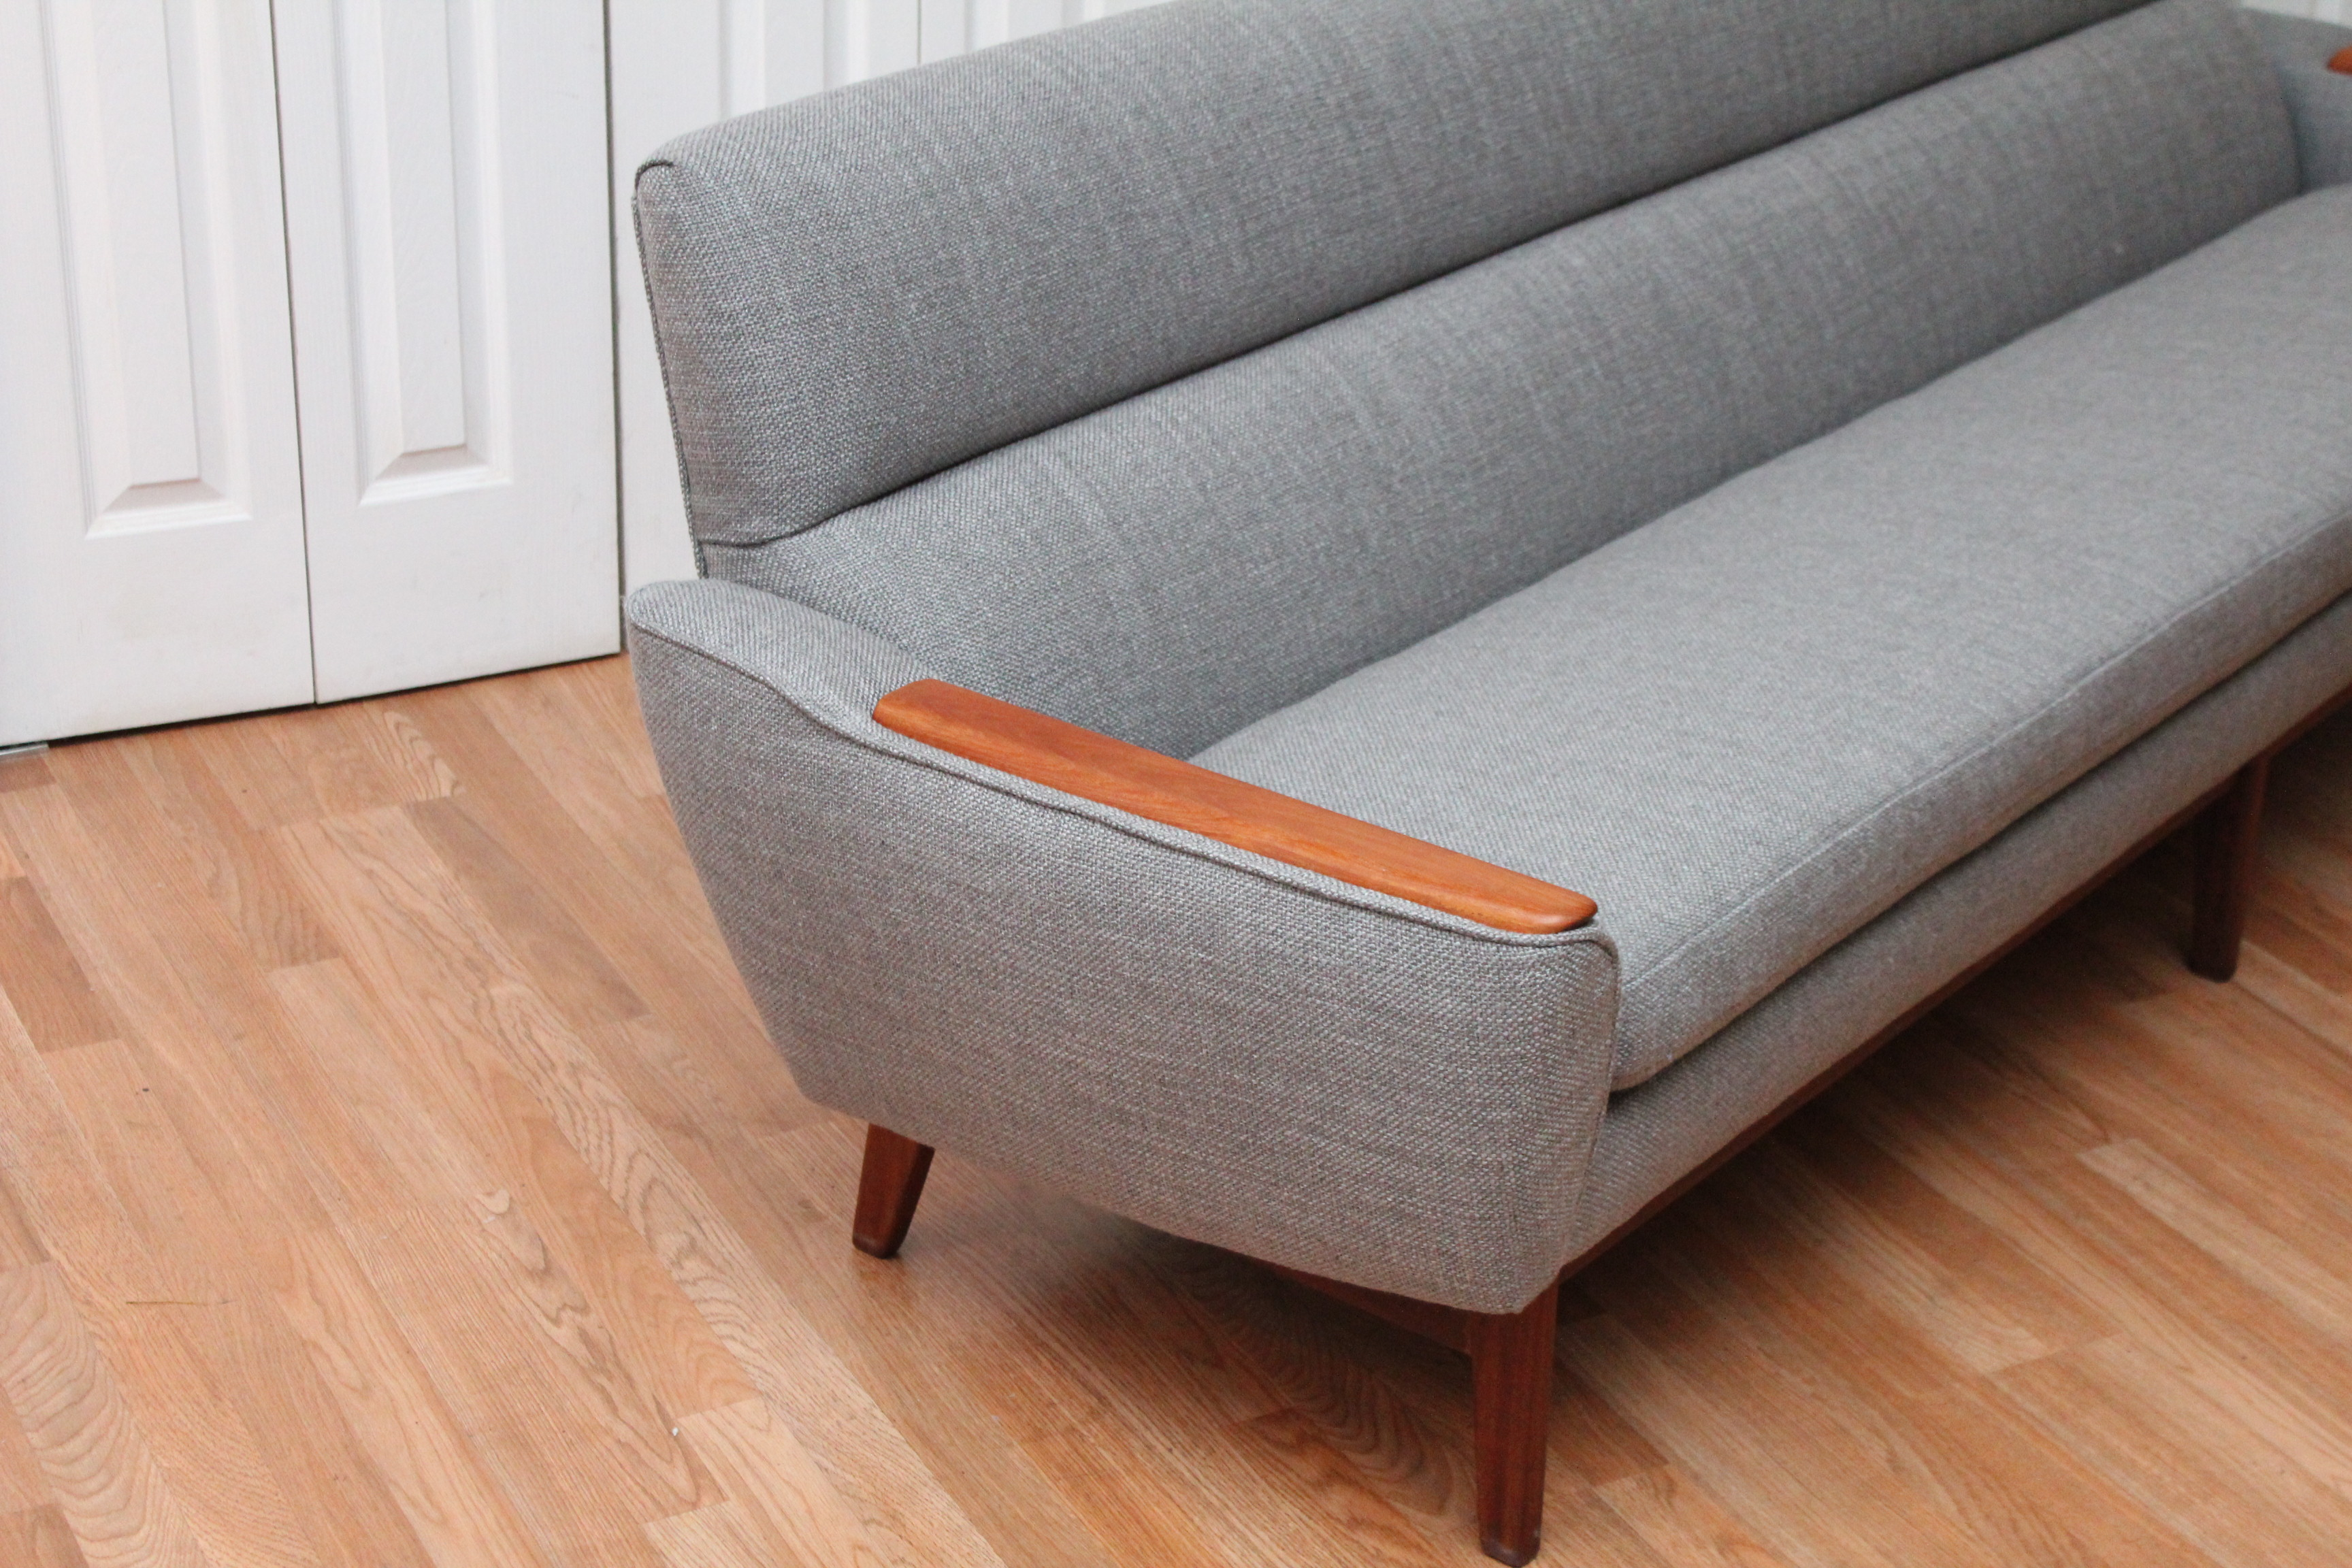 Mid Century Modern Danish Sofa With Teak Armrests An Orange Moon